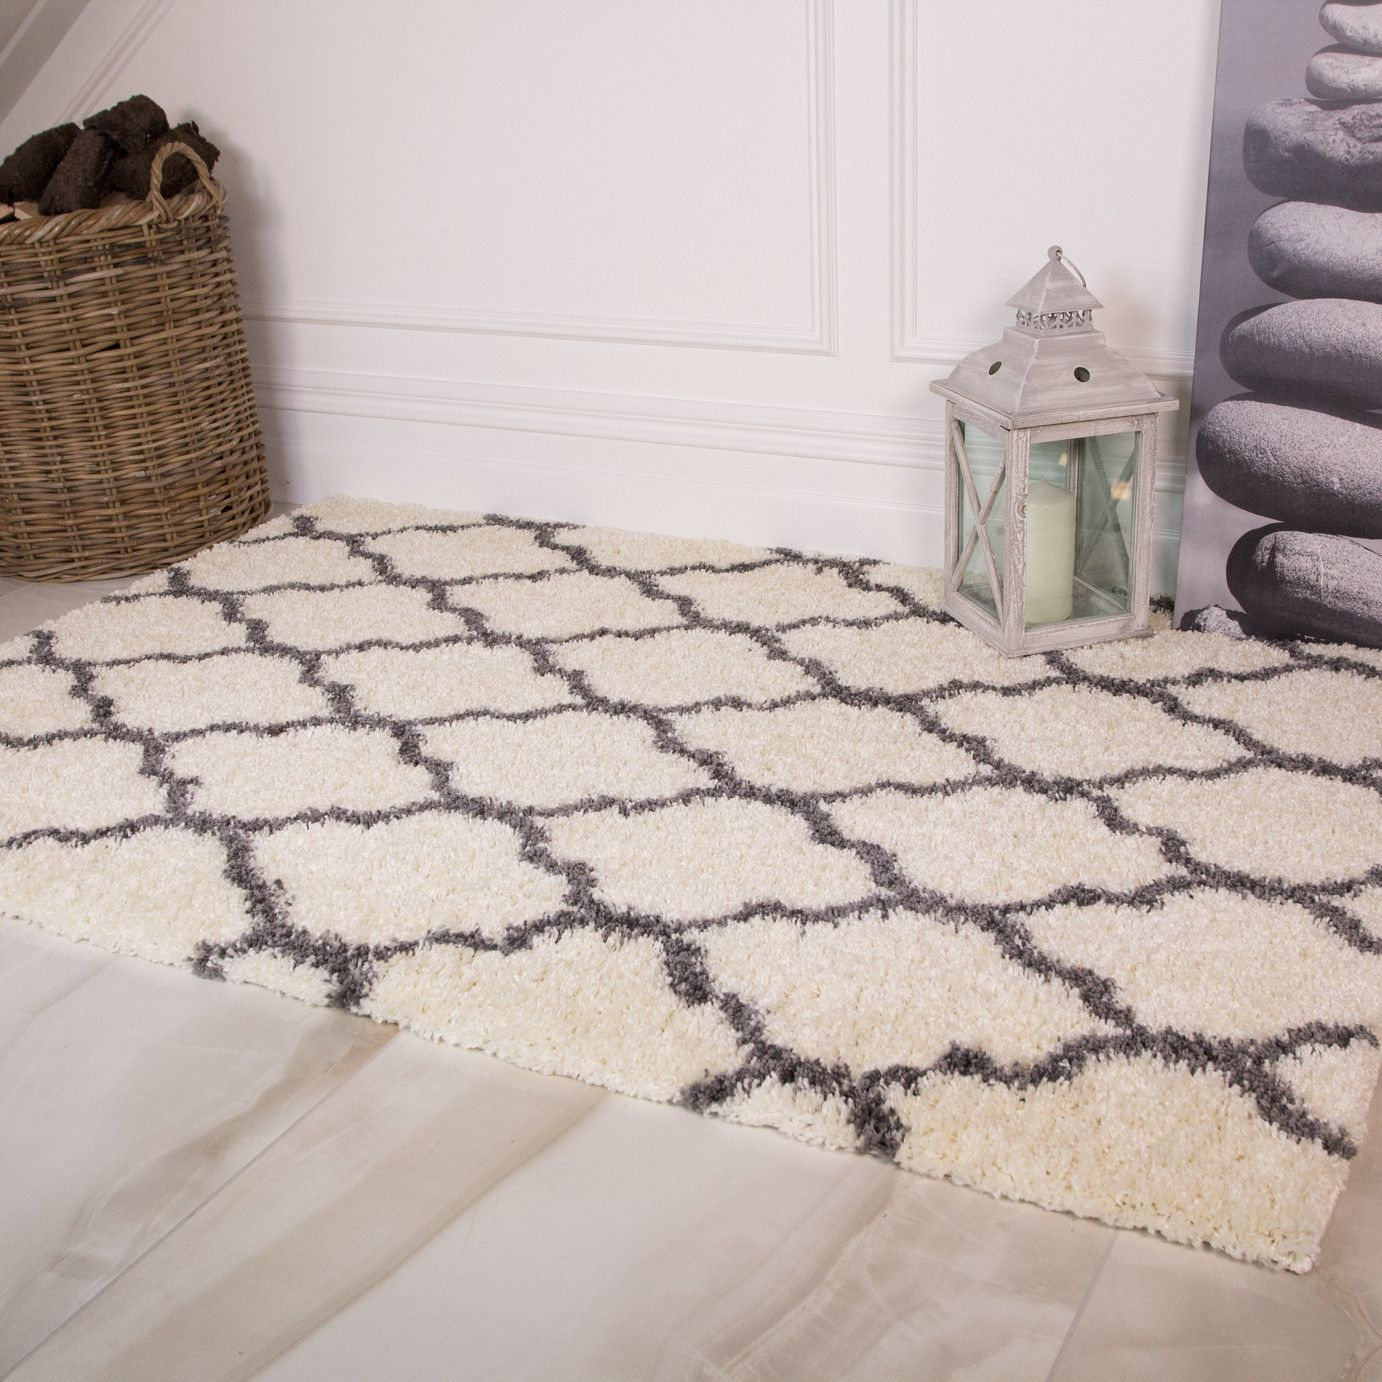 Imperial Shaggy Wool Rugs in Fossil buy online from the